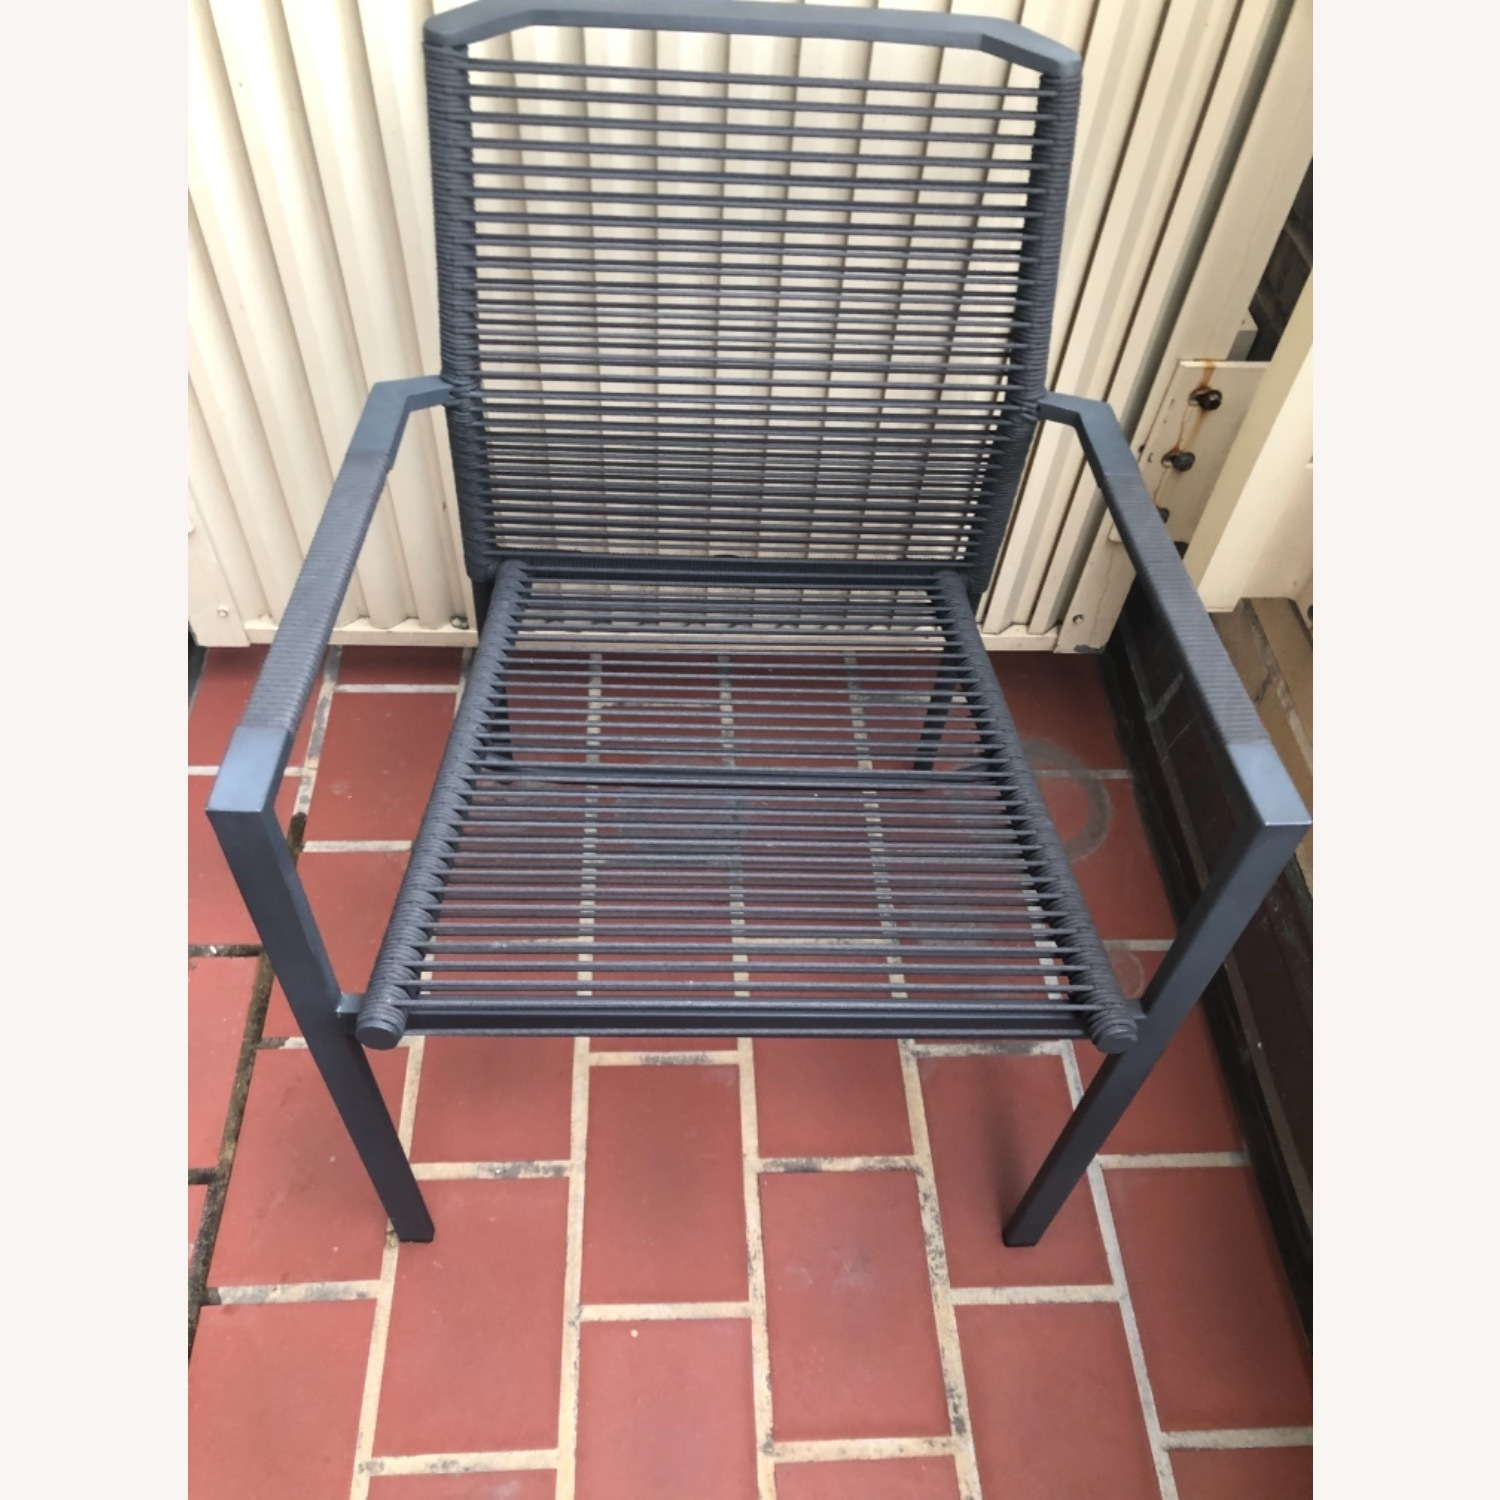 Set of 2 Cane-line Edge Outdoor Armchairs - image-4